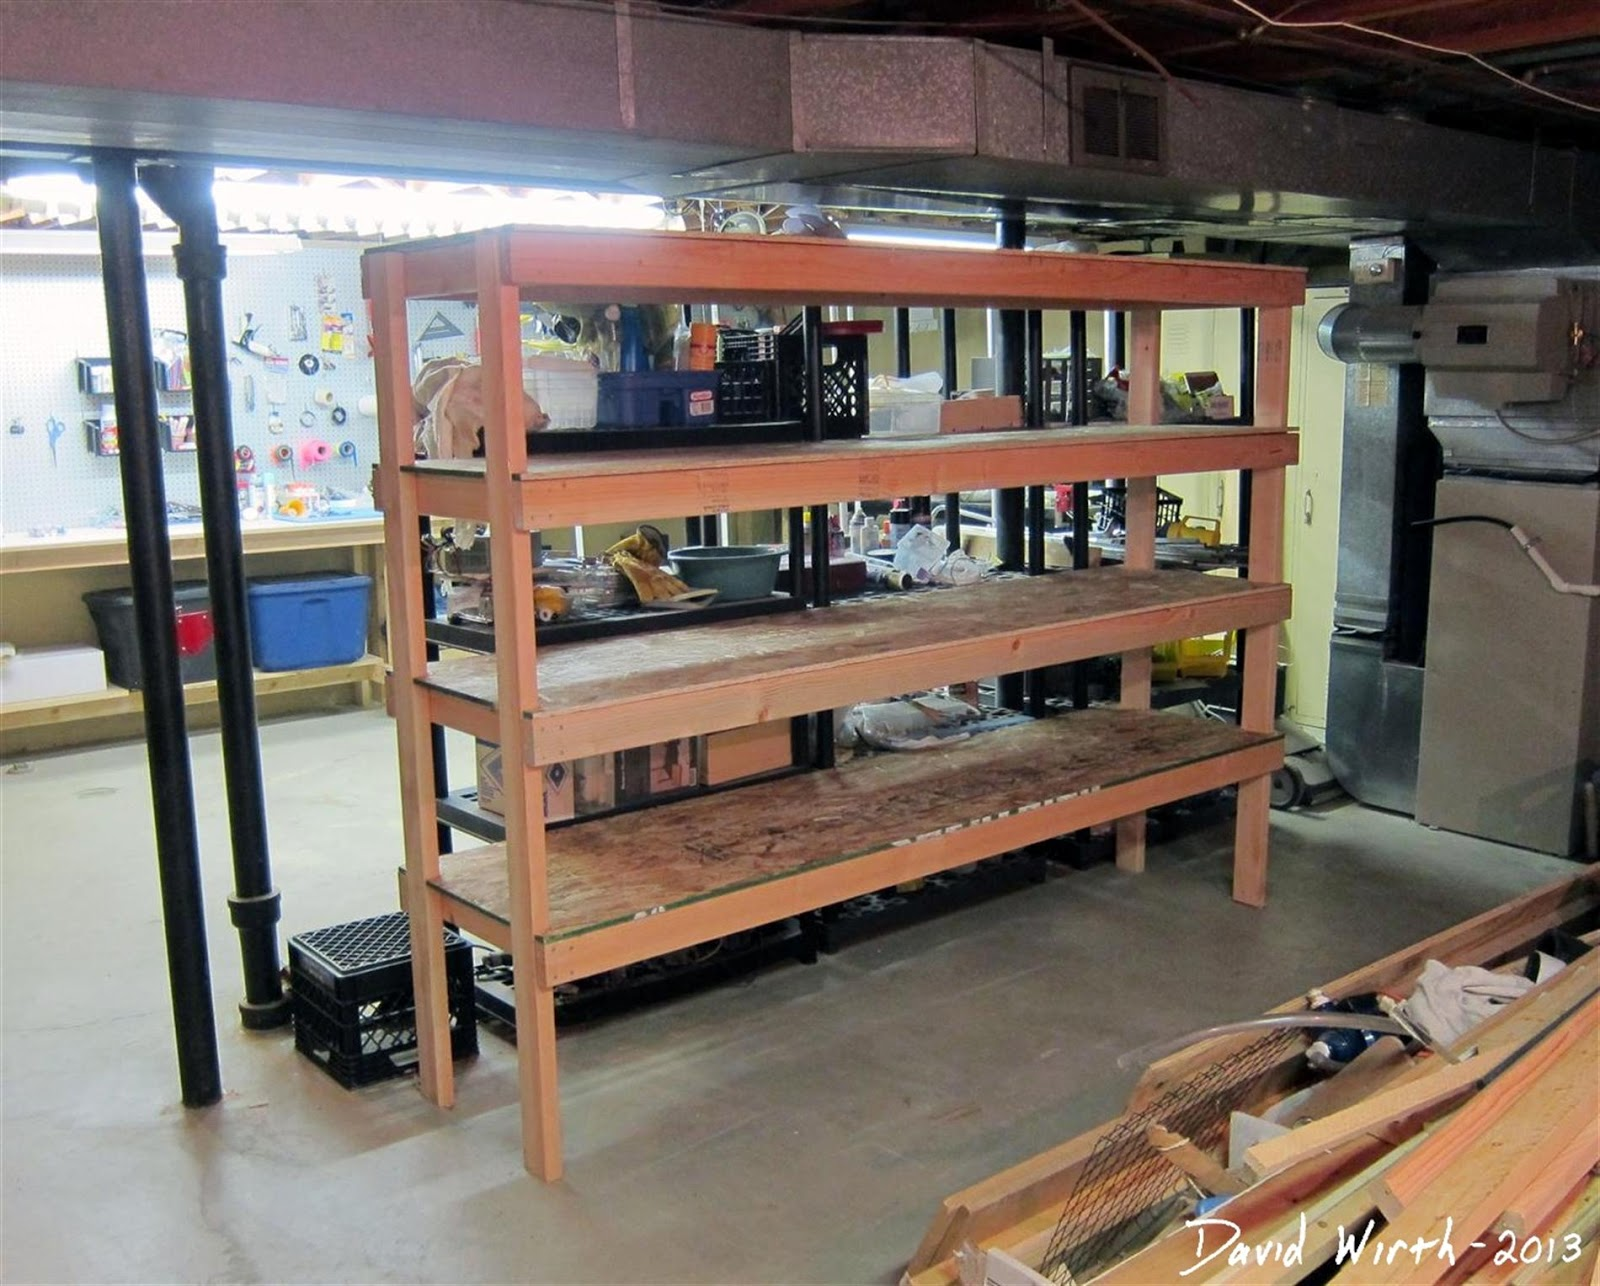 Woodworking how to build wood storage shelves PDF Free Download